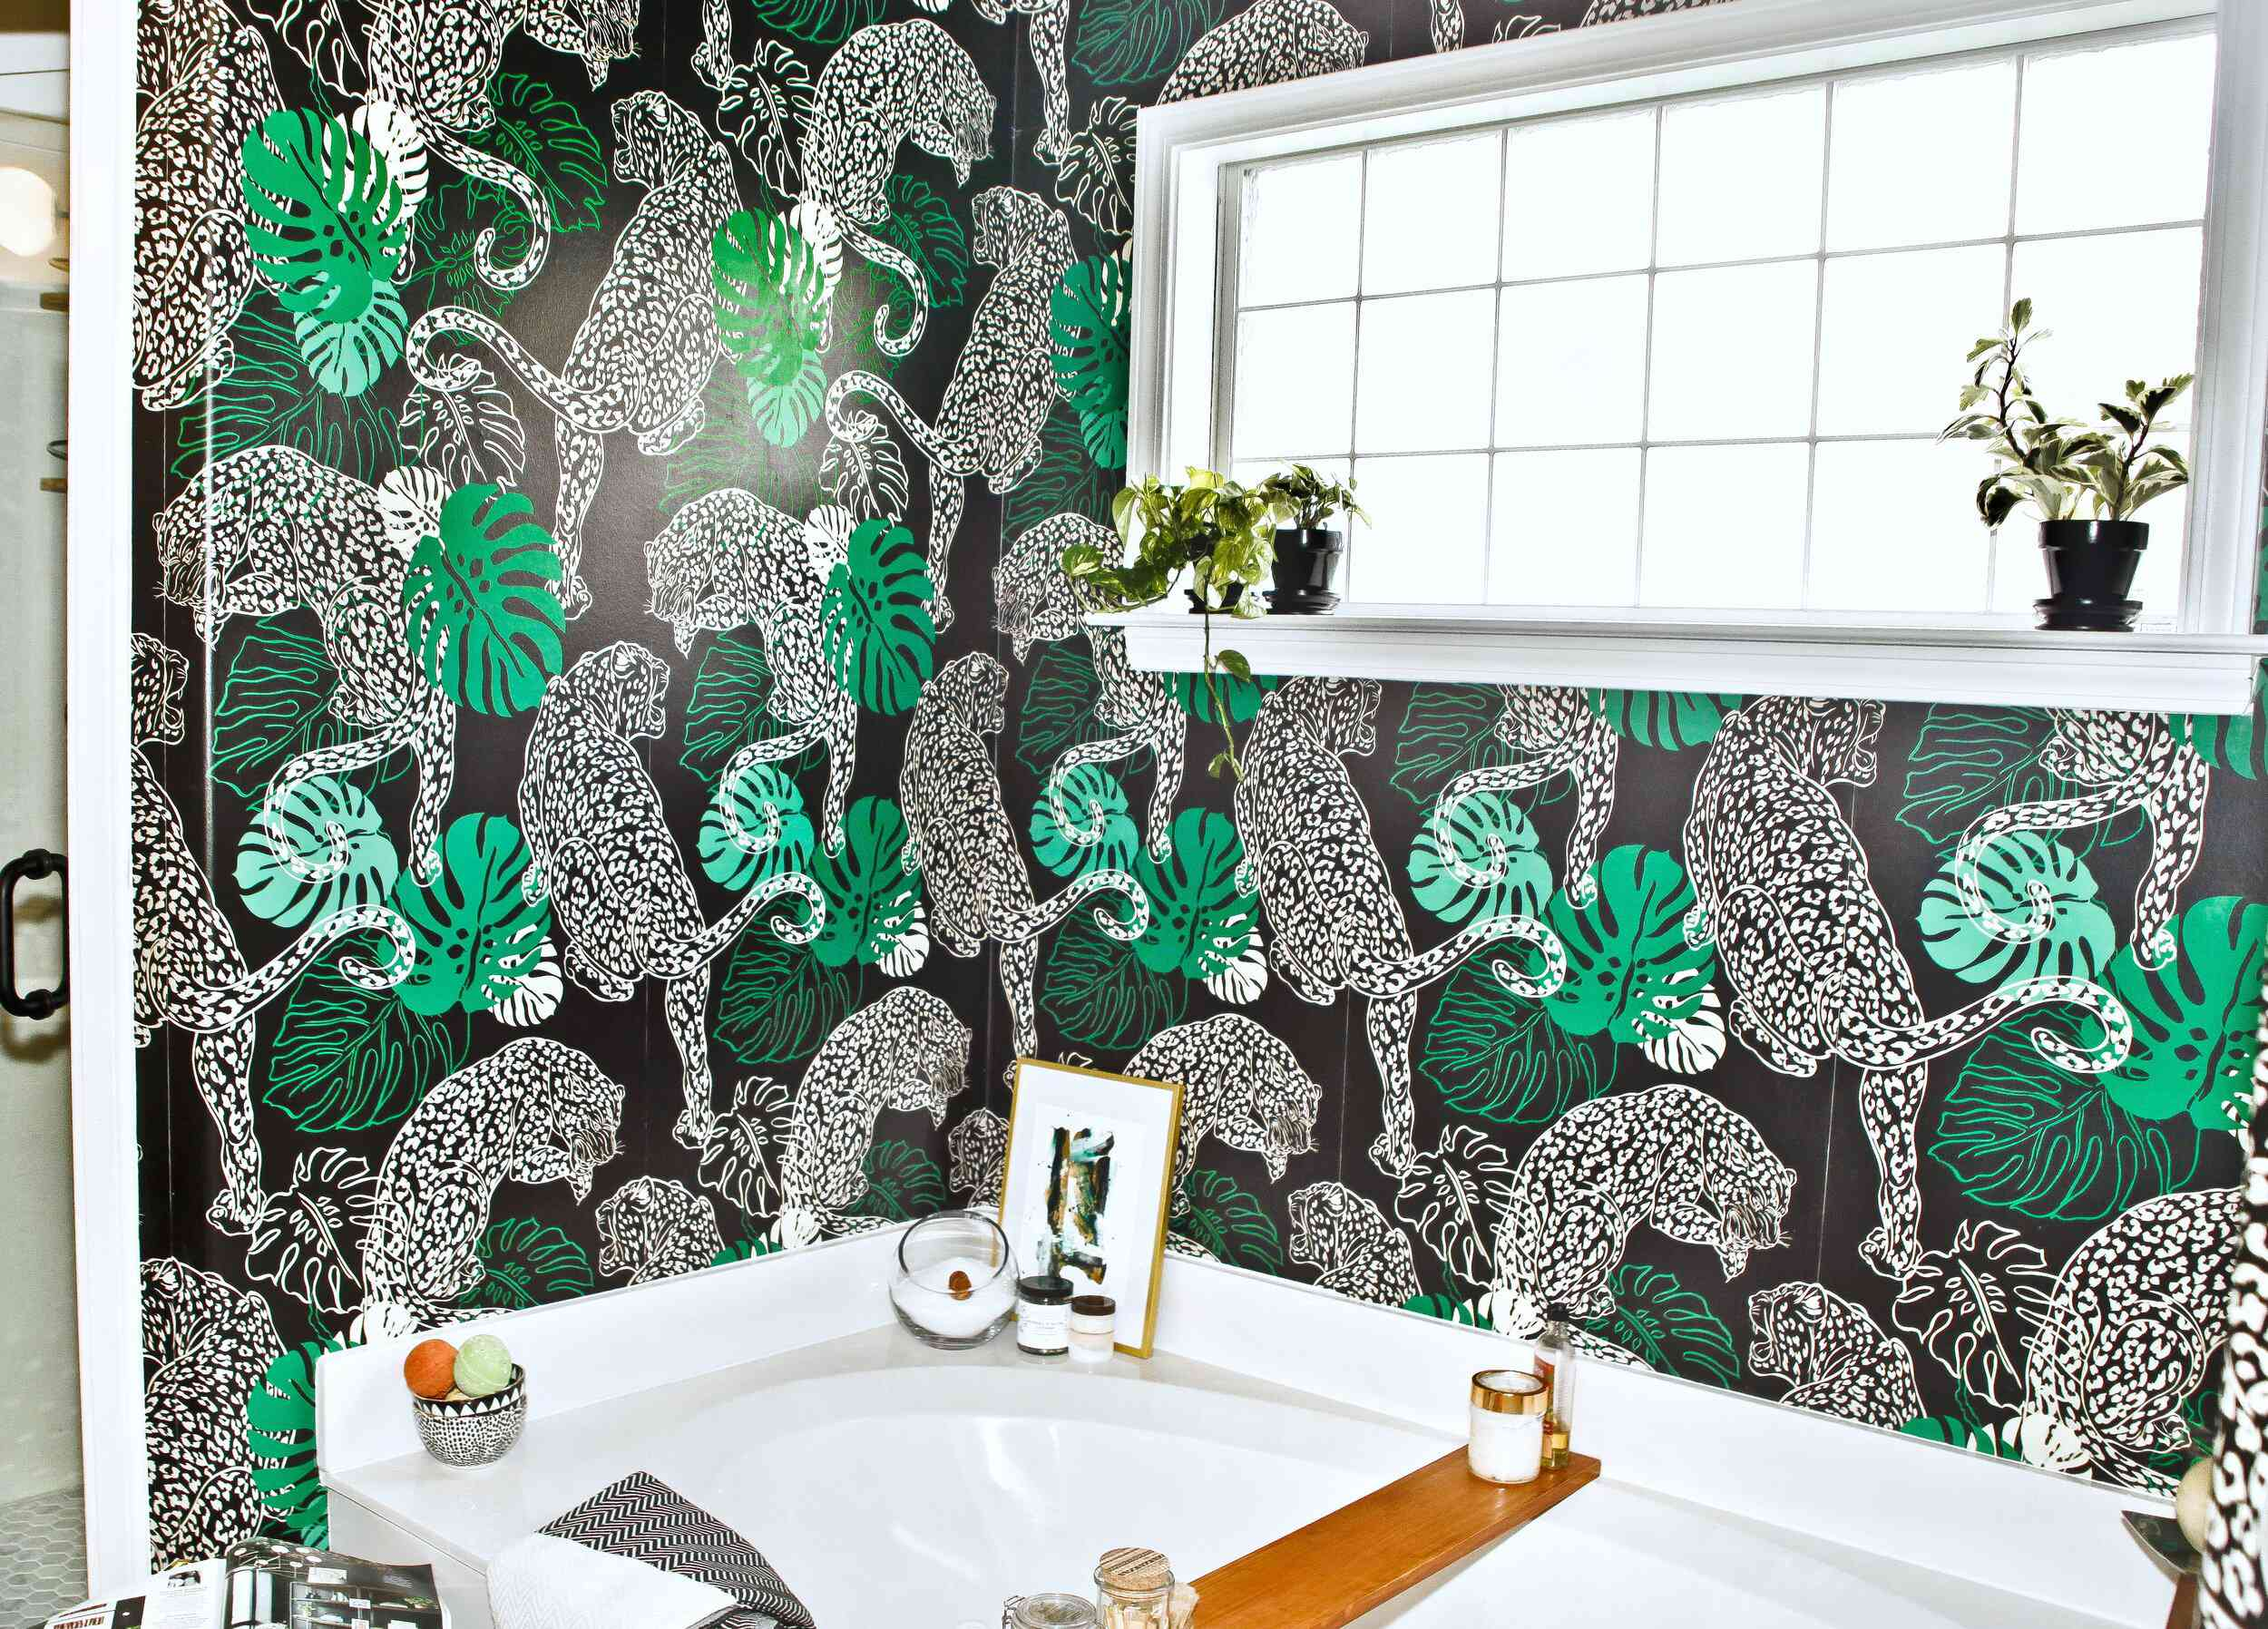 Black and white wallpaper with jaguar and leaves pattern.